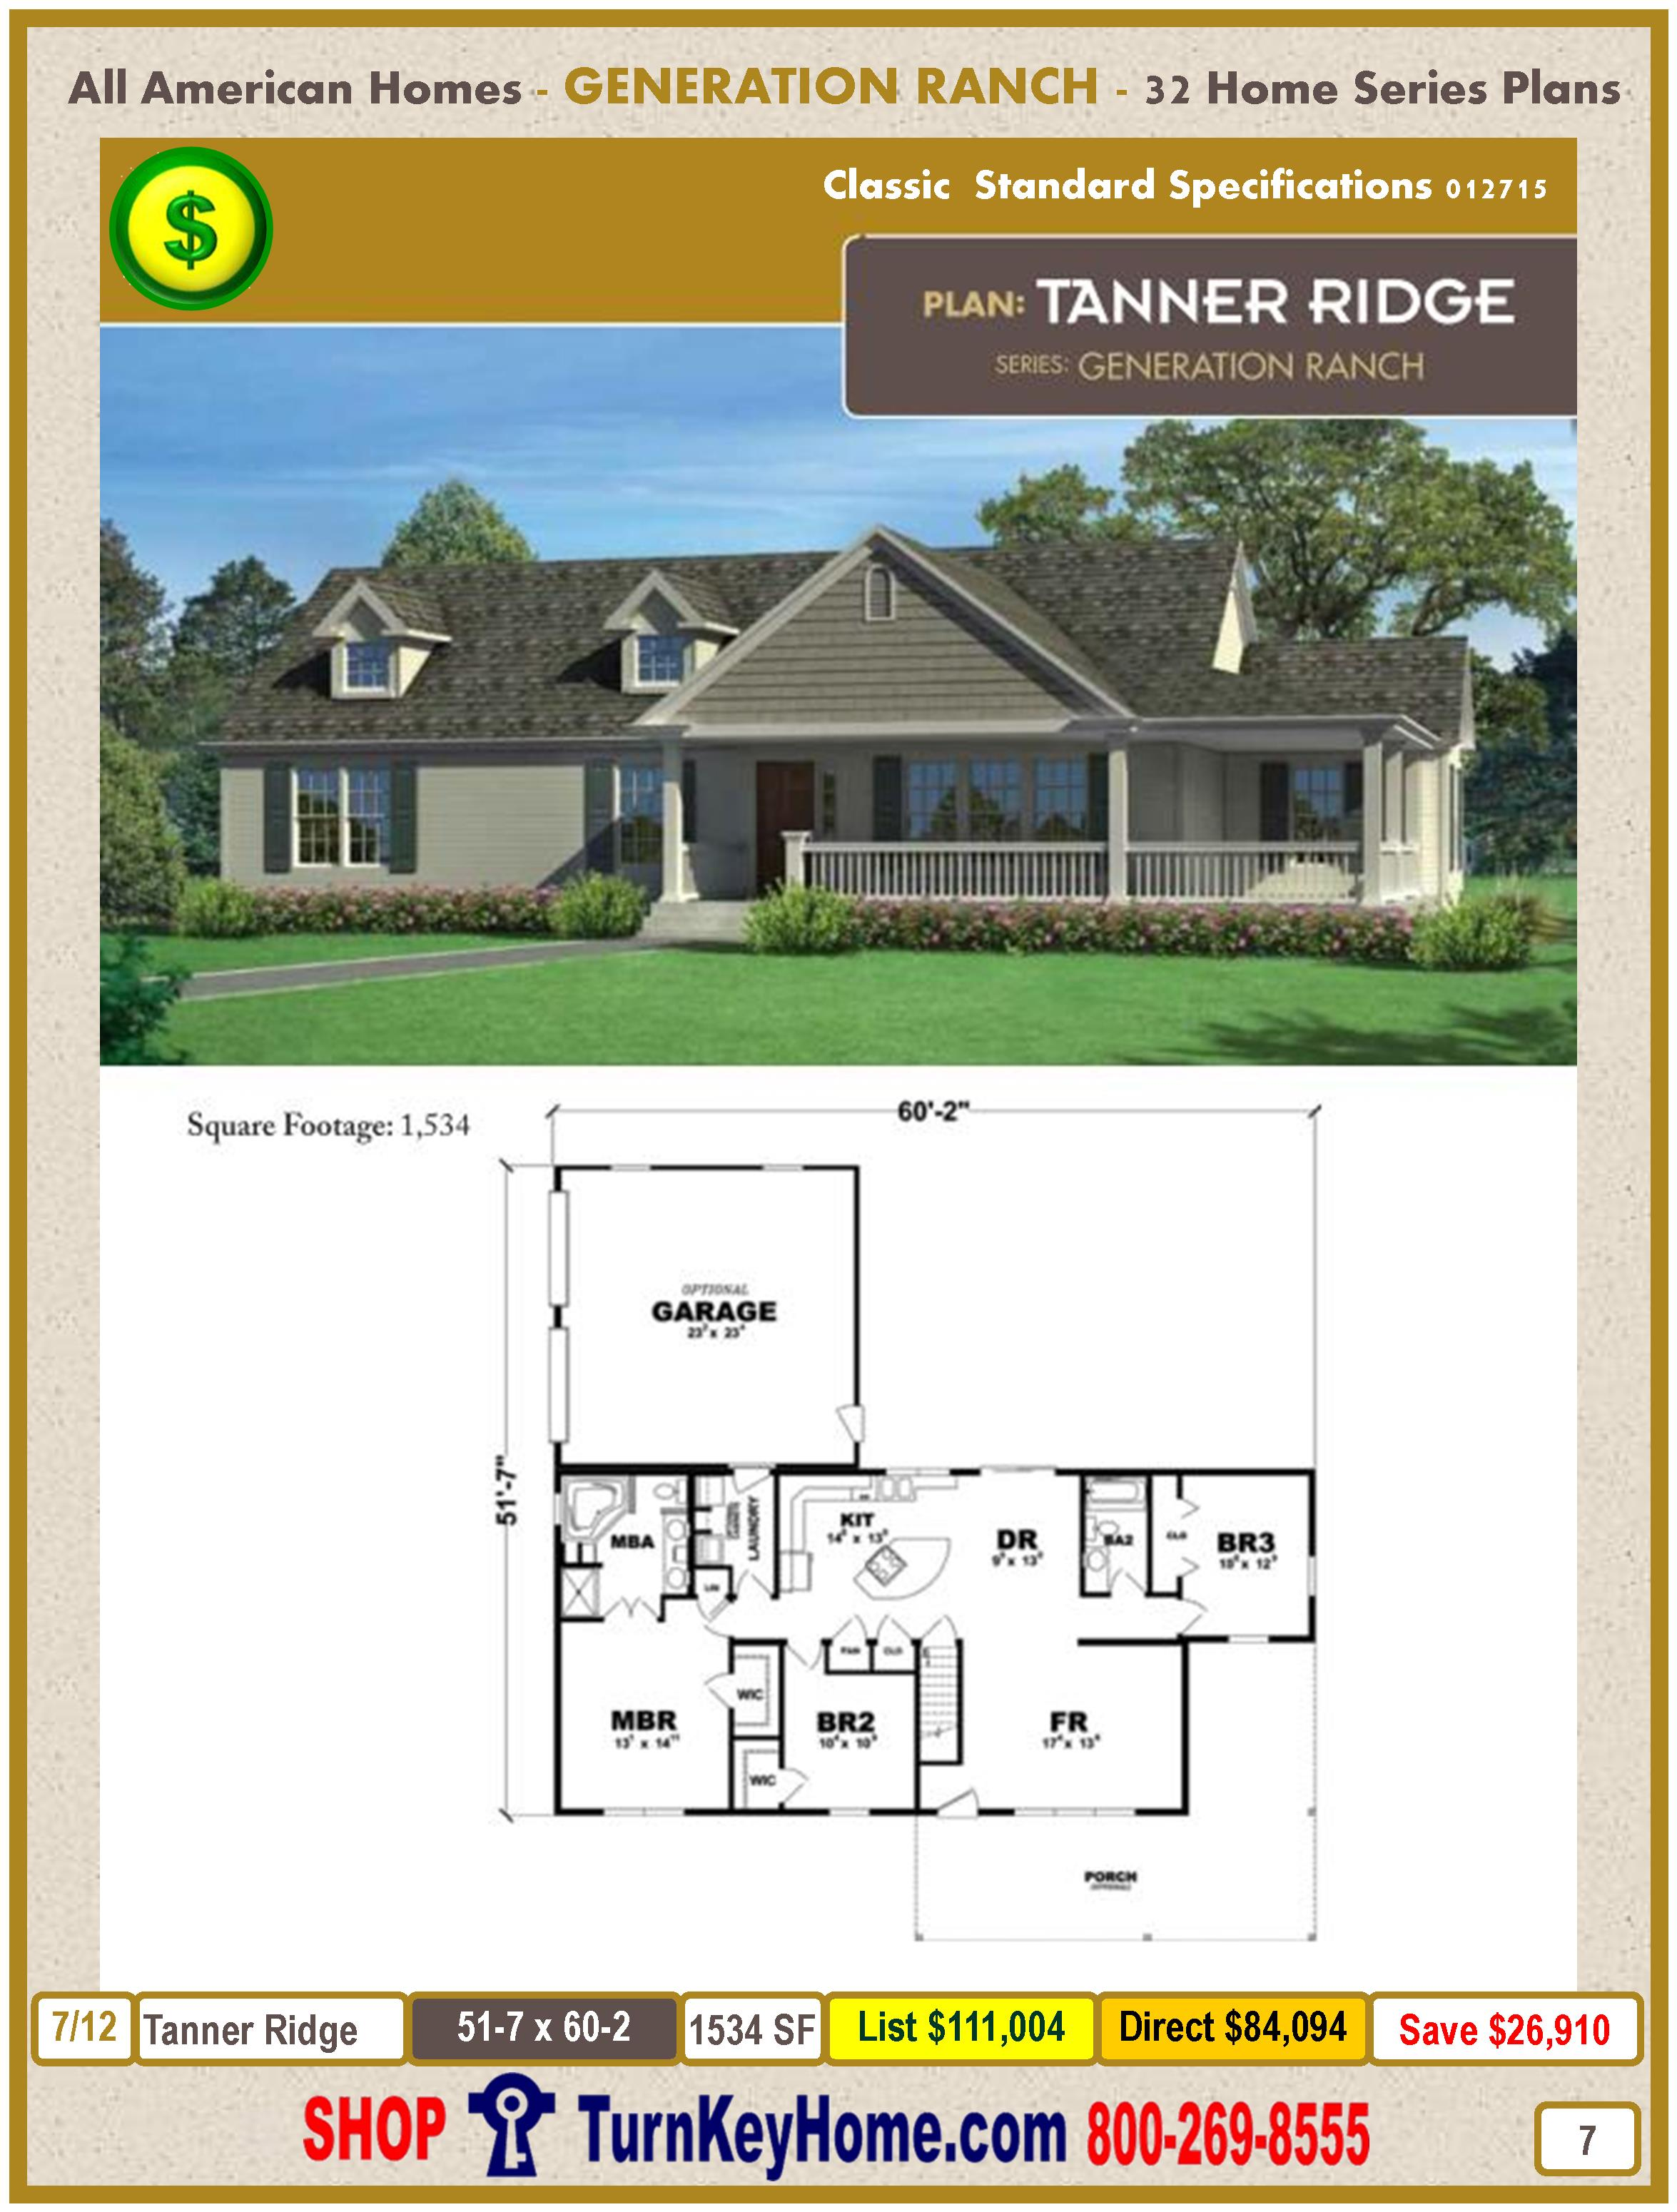 Modular.All.American.Homes.Generation.Ranch.Home.Series.Catalog.Page.7.Tanner.Ridge.Direct.Price.021415